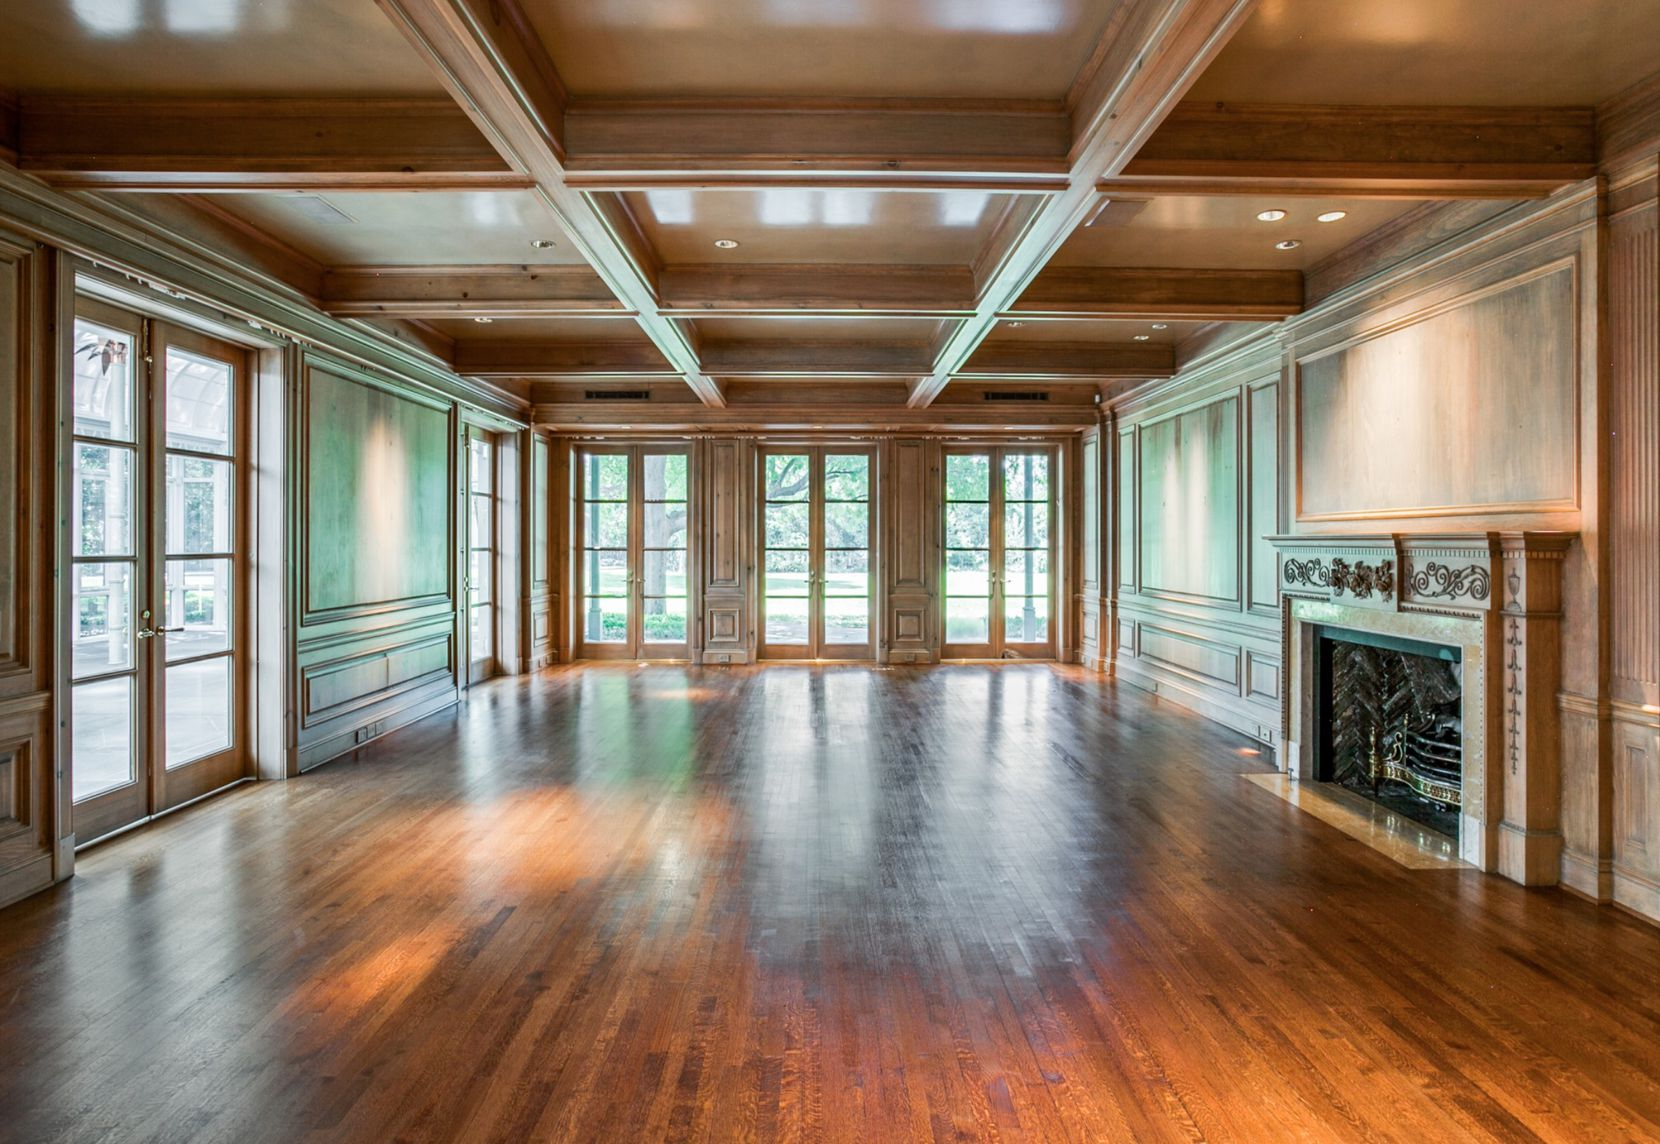 The house has more than 11,000 square feet.